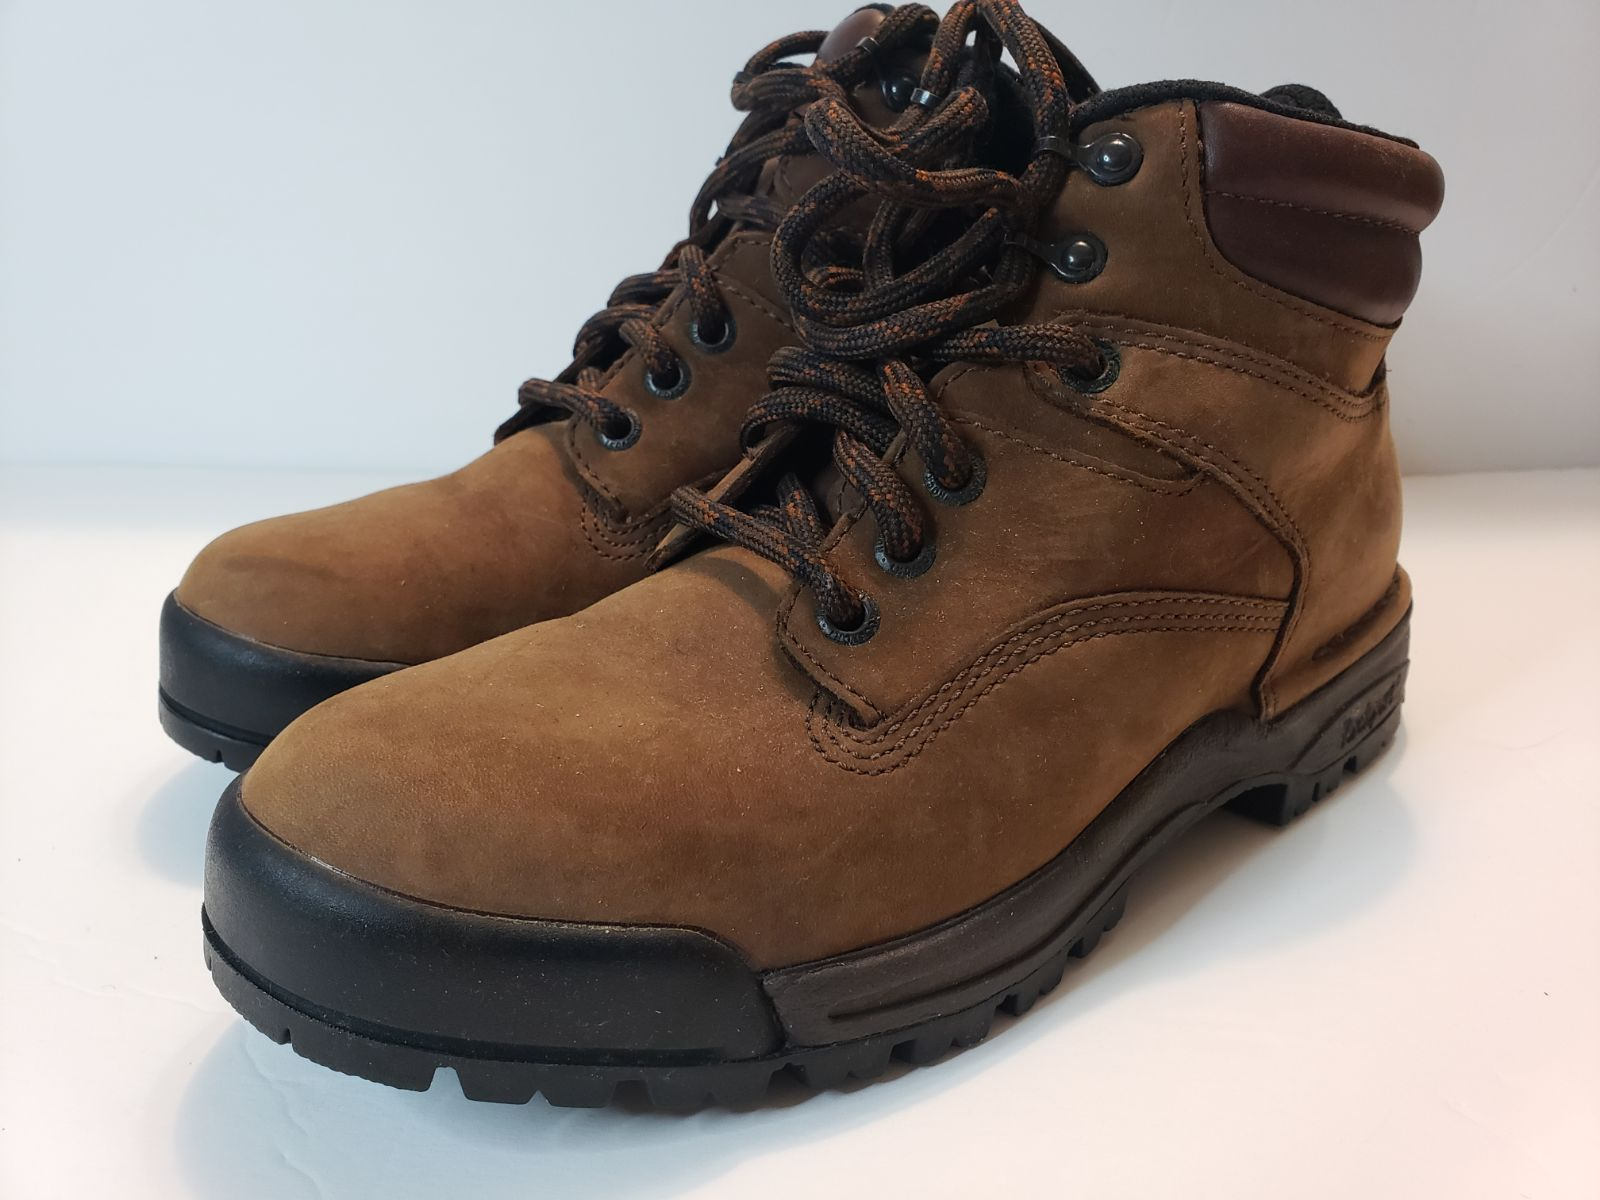 Rockport Women's Hiking Boots 7.5